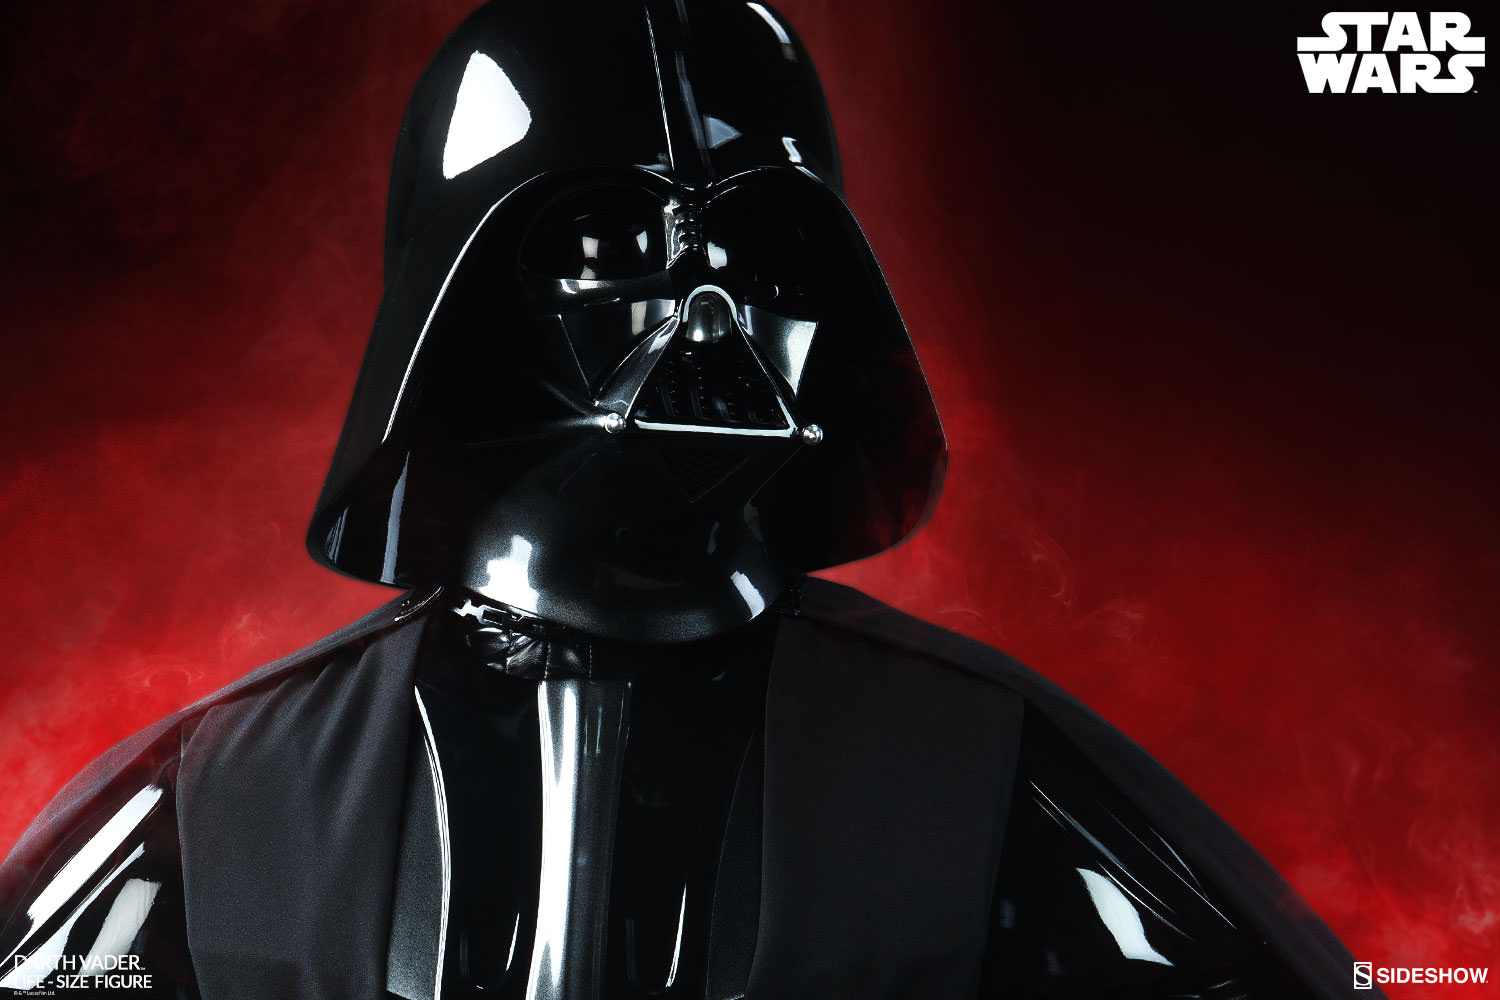 Star Wars Life Size Darth Vader Images And Details